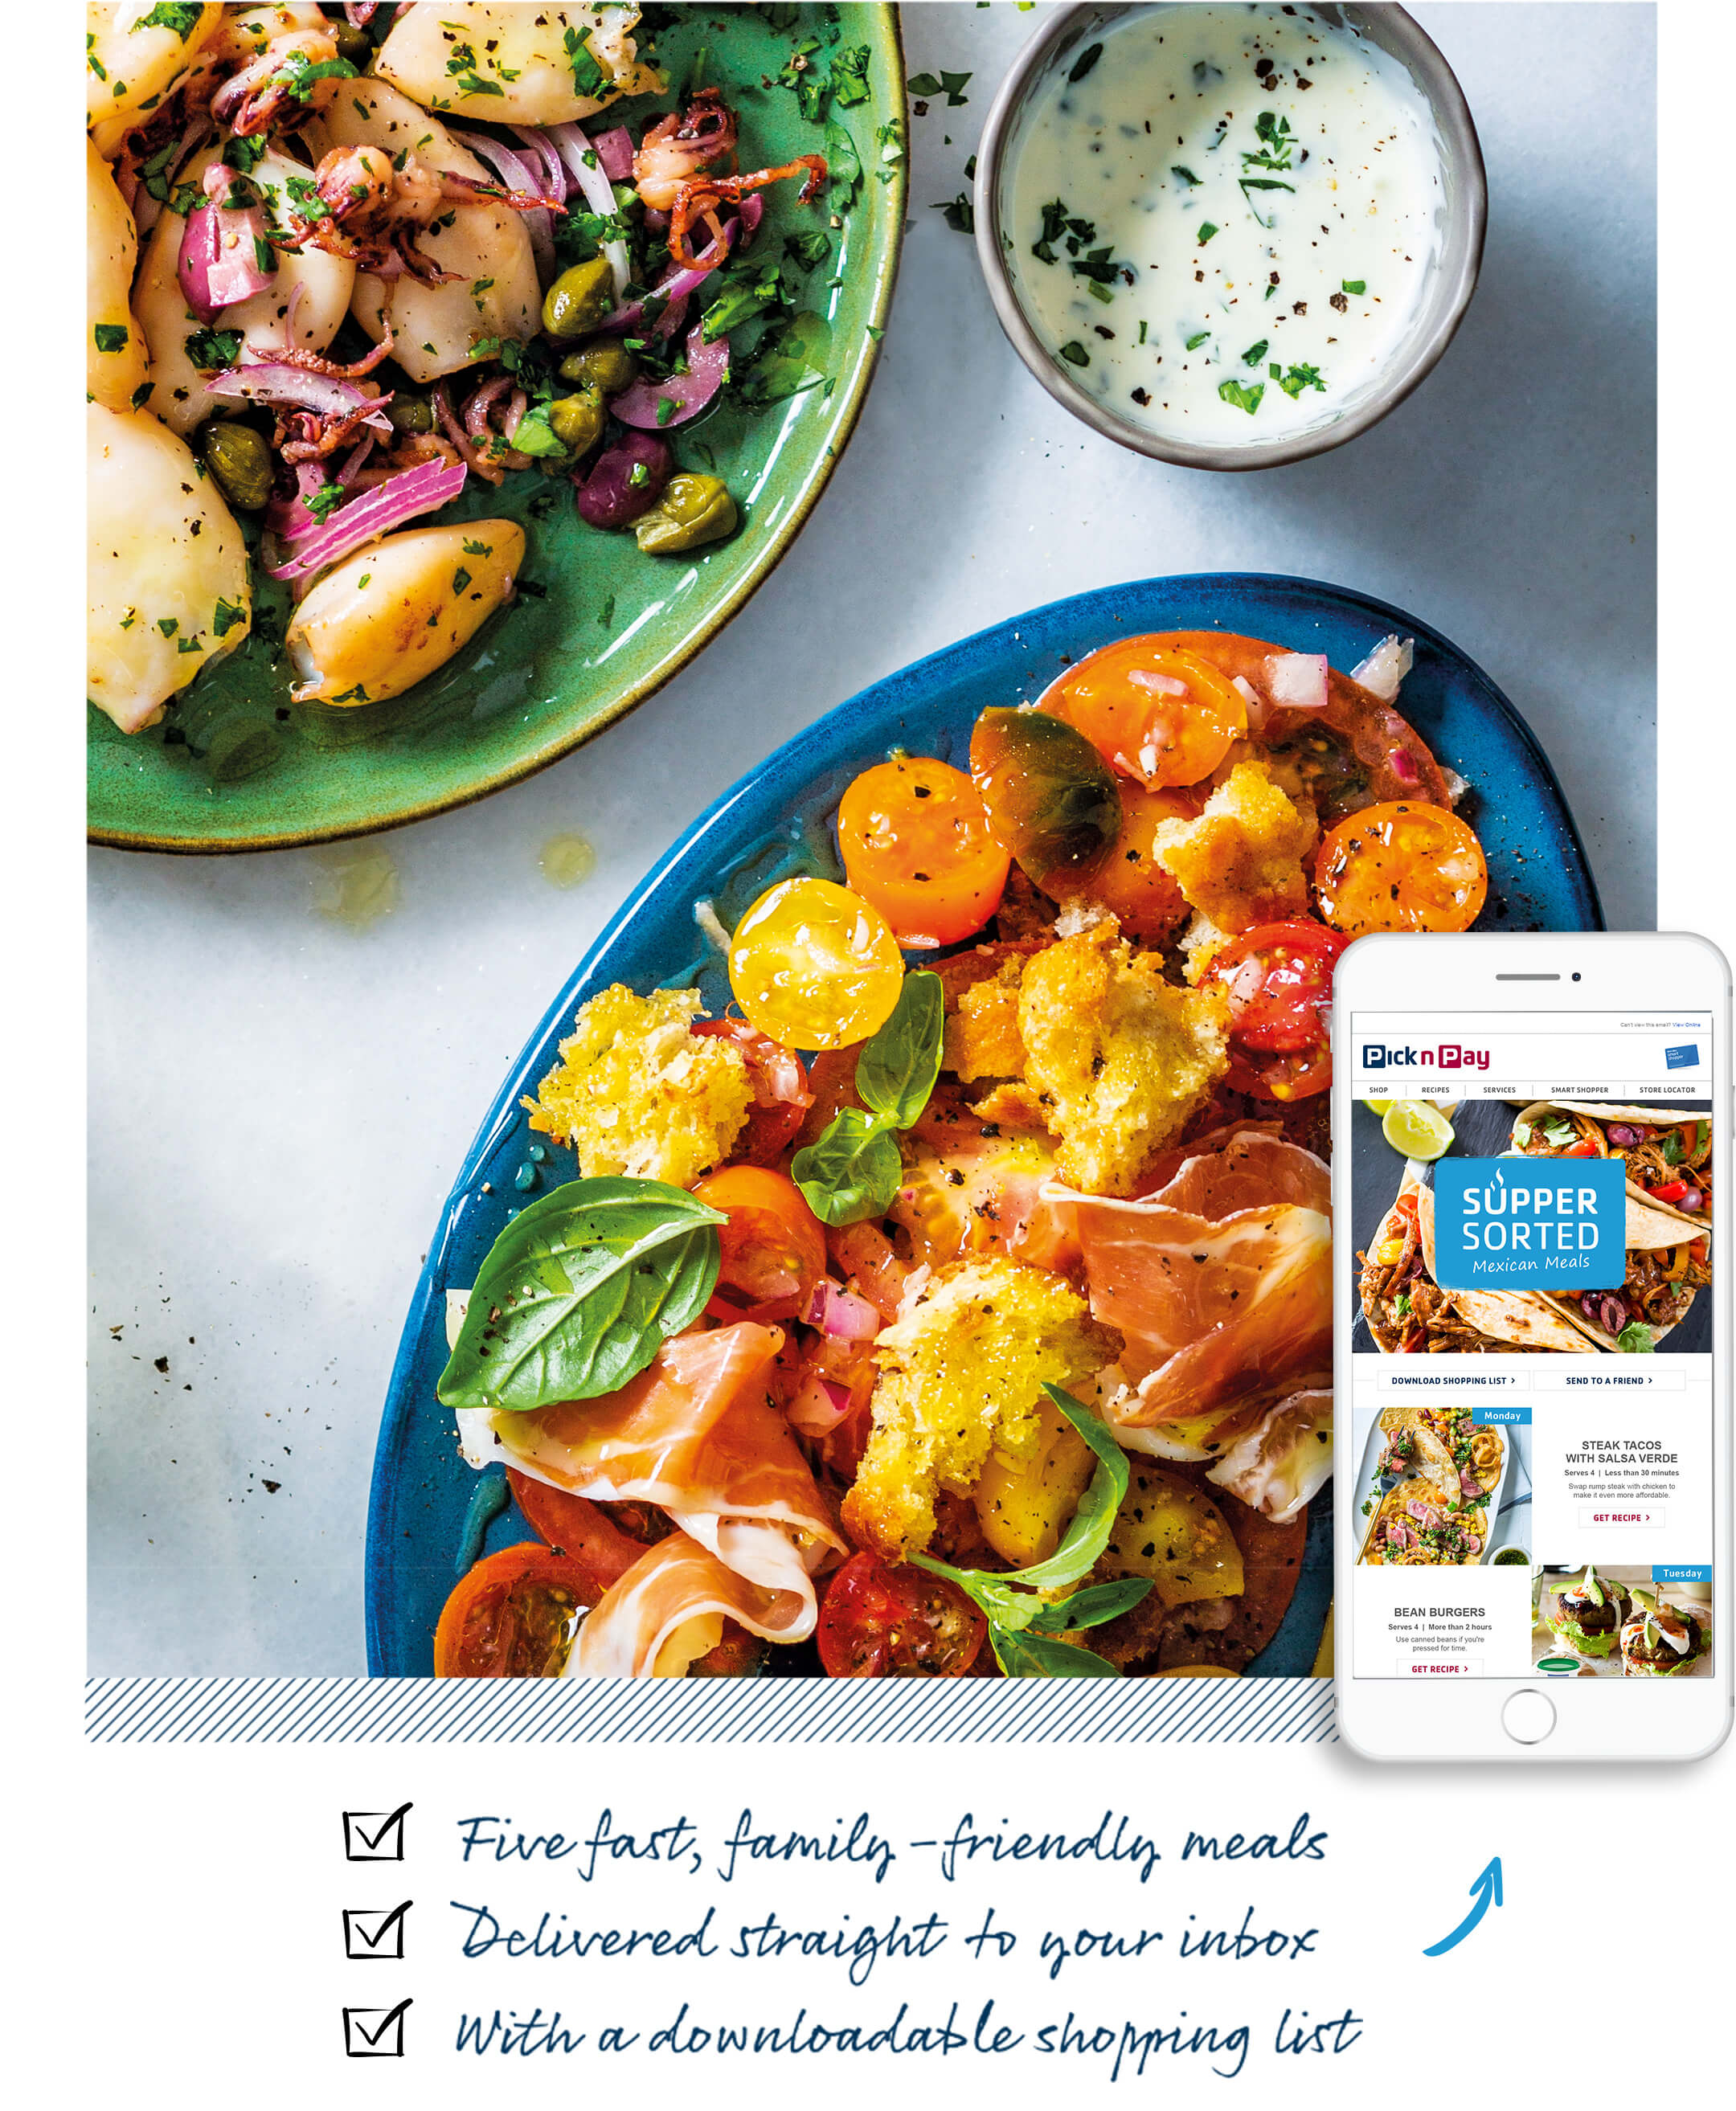 * Five fast, family-friendly meals * Delivered straight  to your inbox * With a downloadable shopping list